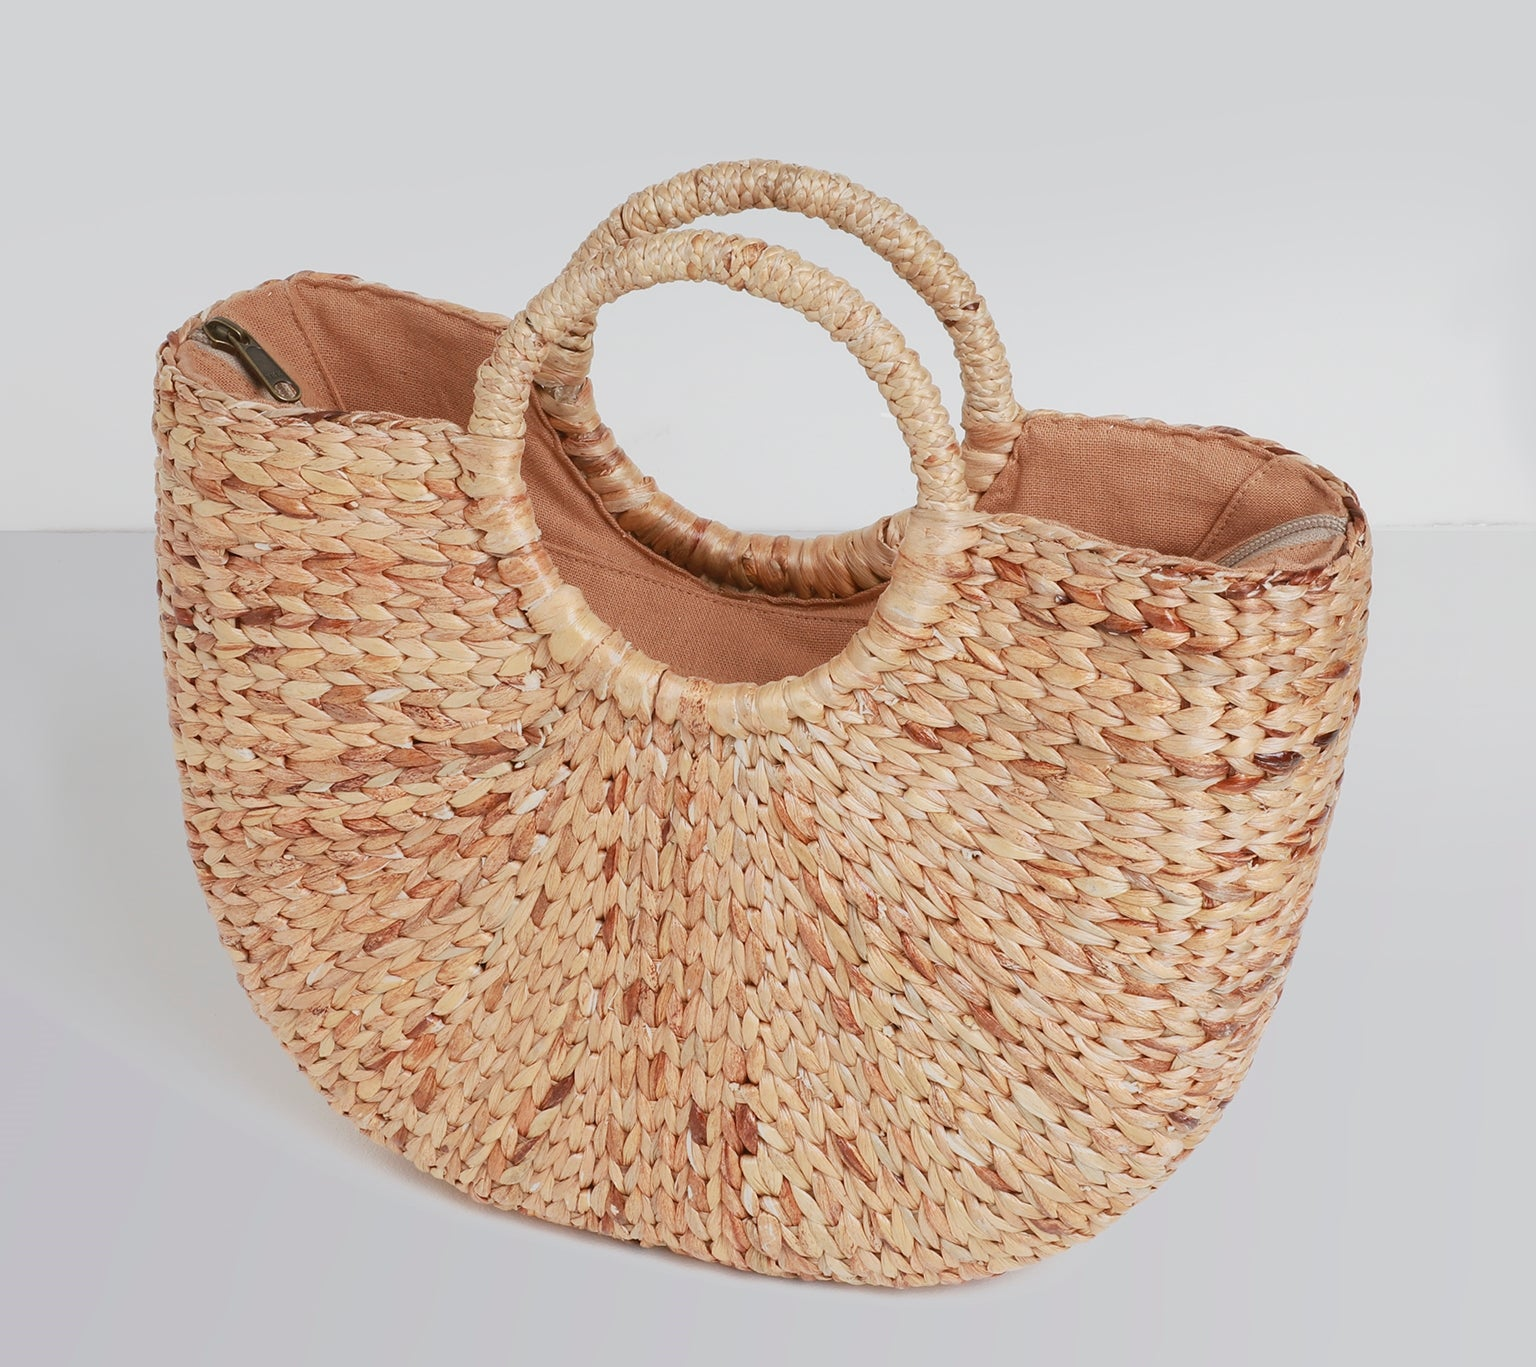 The Ischia Basket Bag